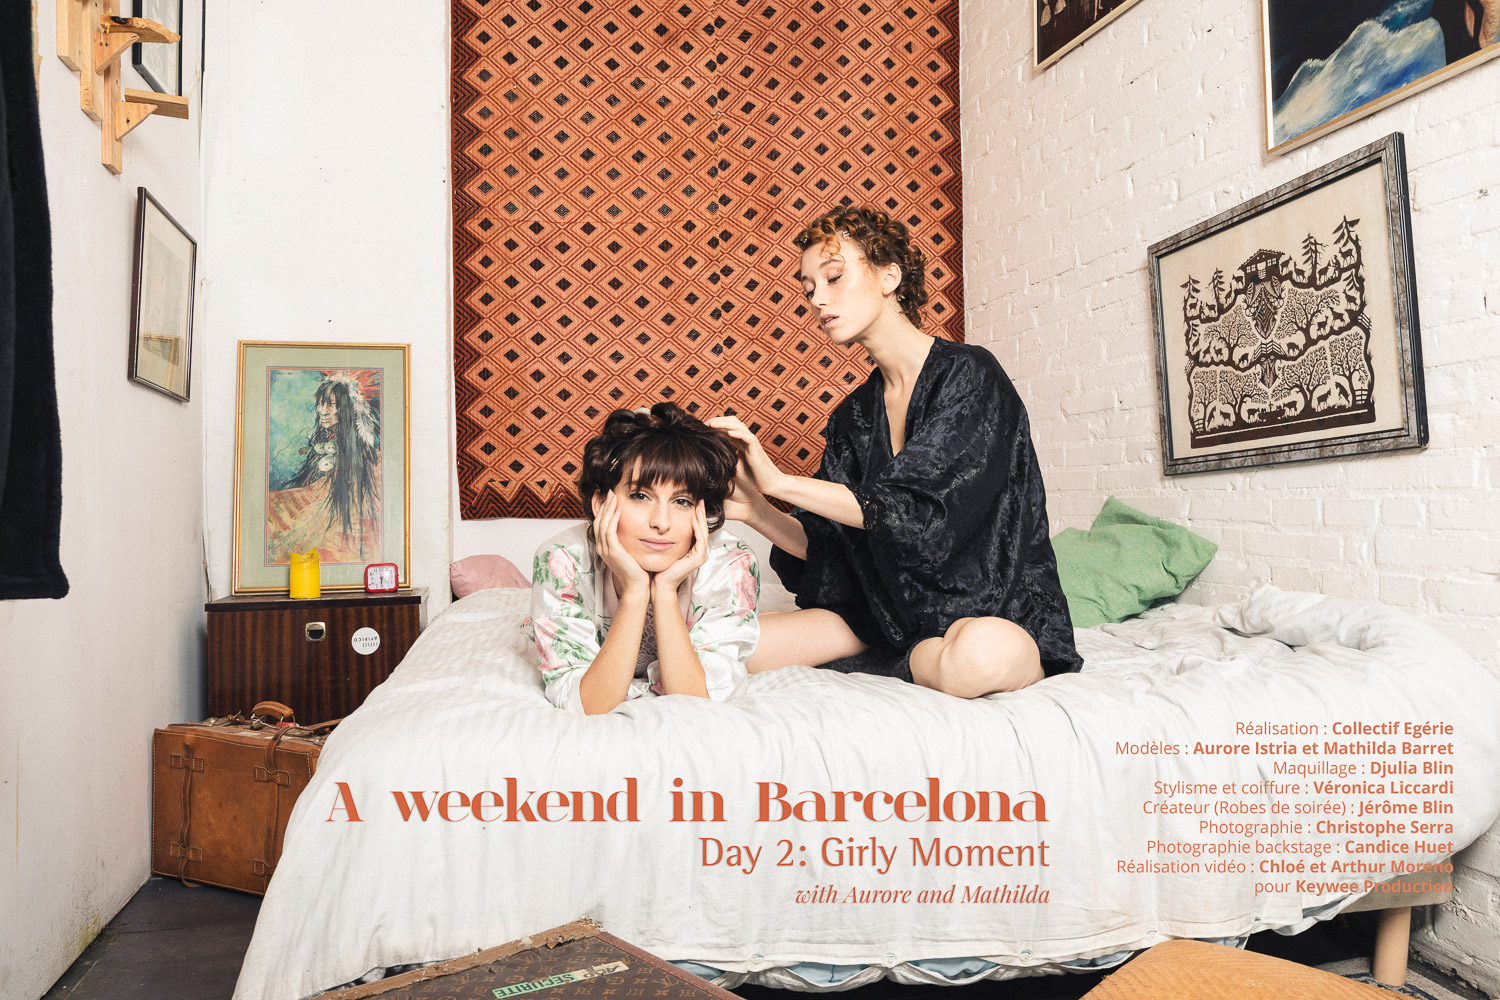 A weekend in Barcelona